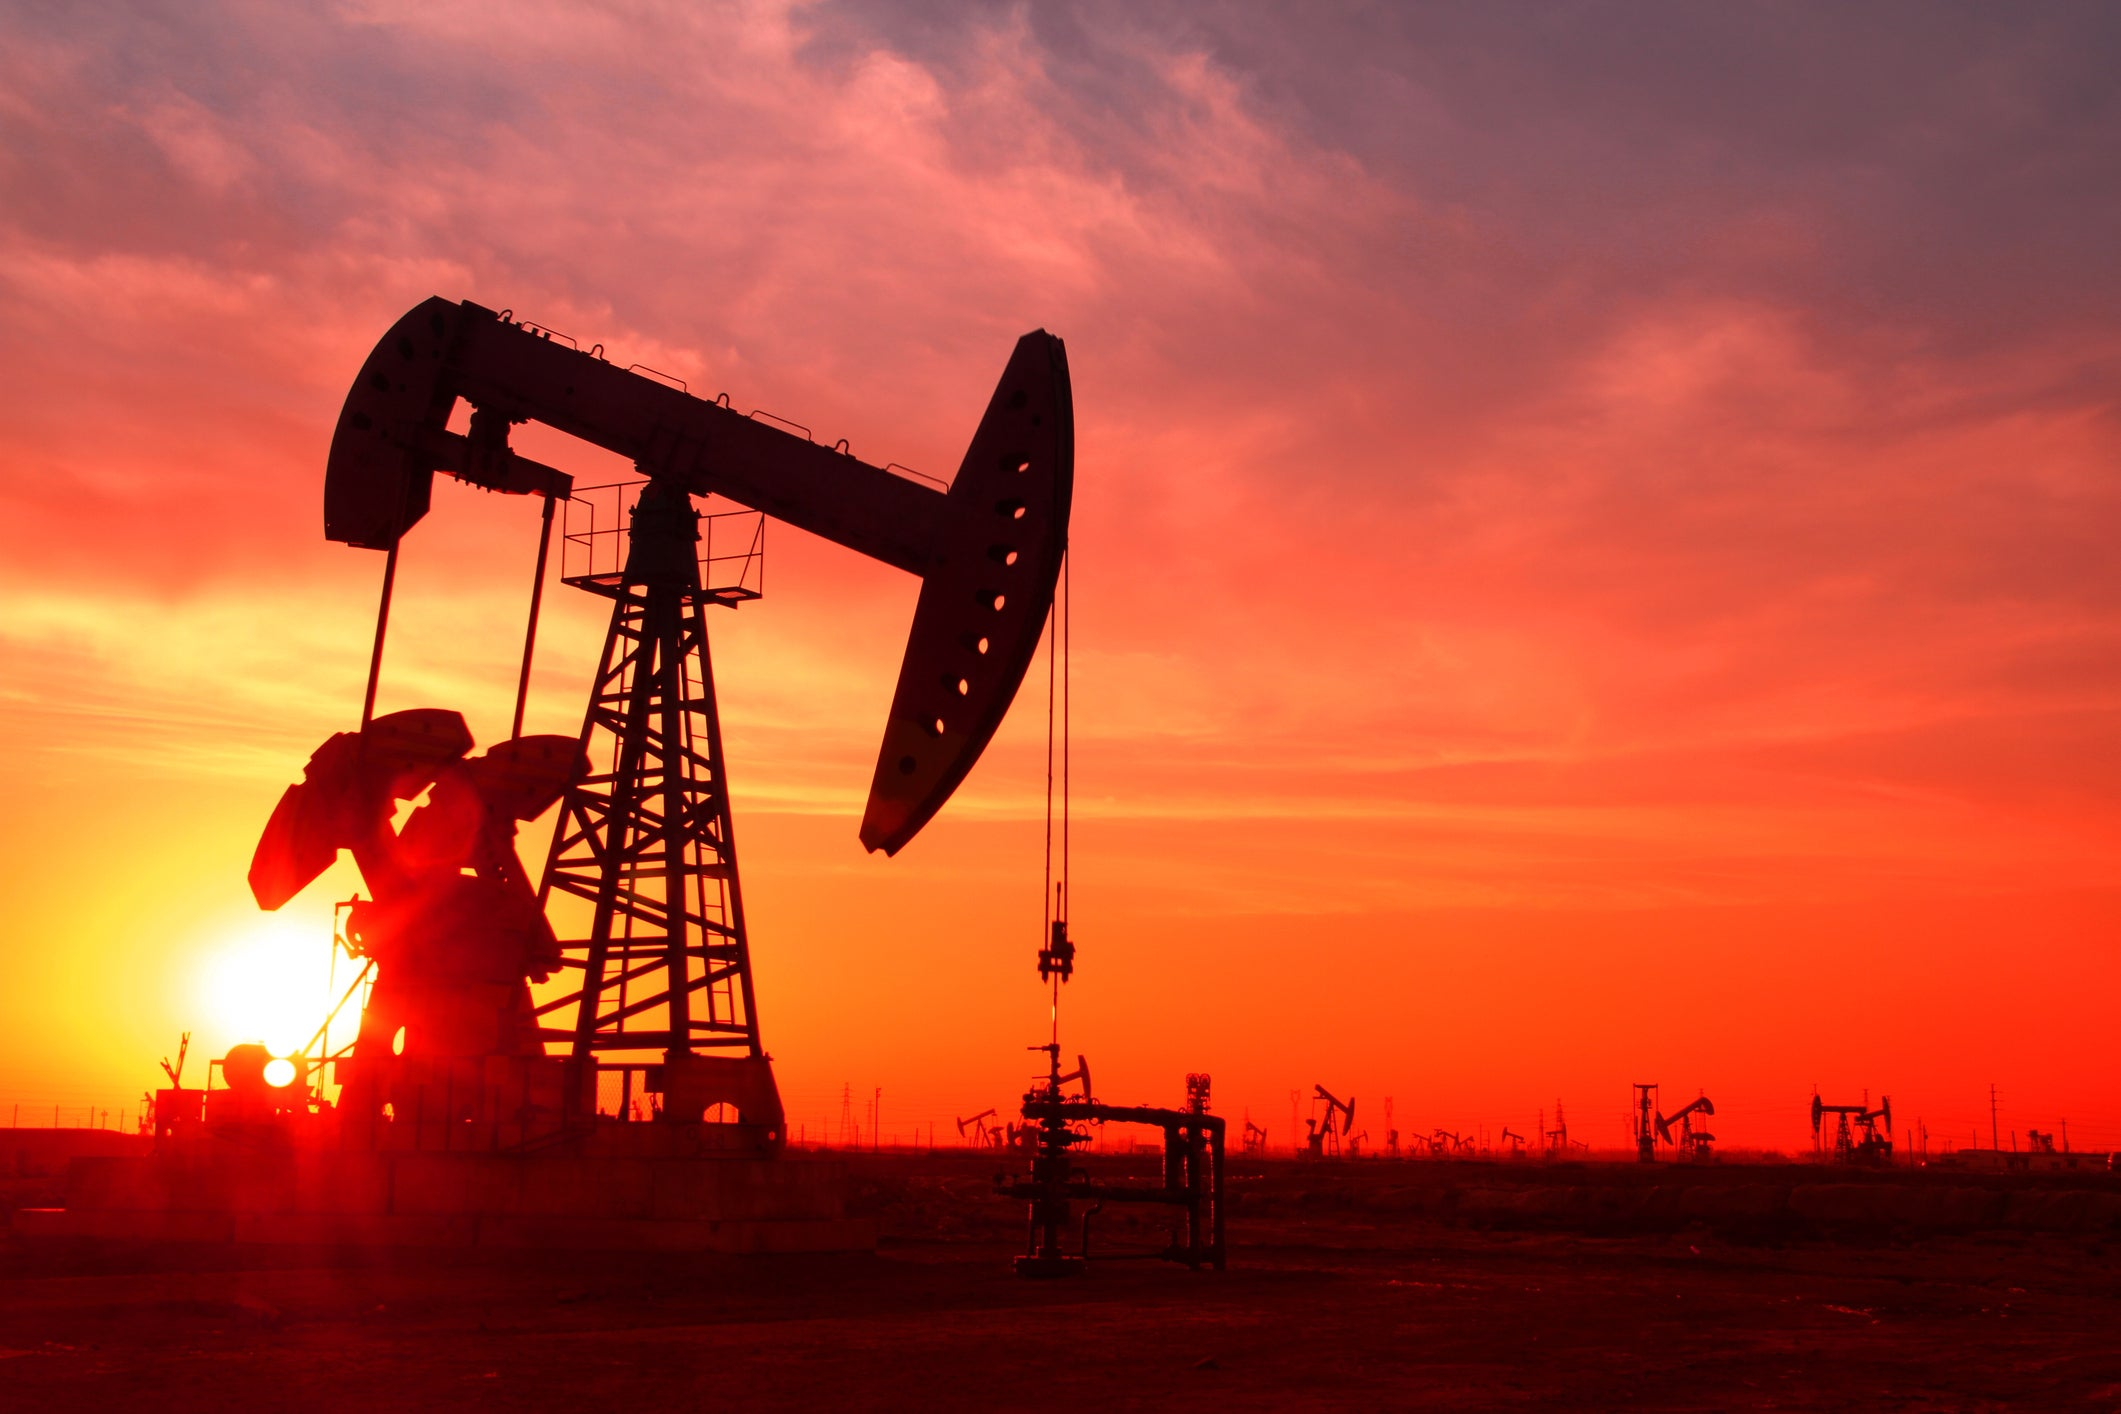 This Stock Can Absolutely Thrive at $50 Oil | The Motley Fool